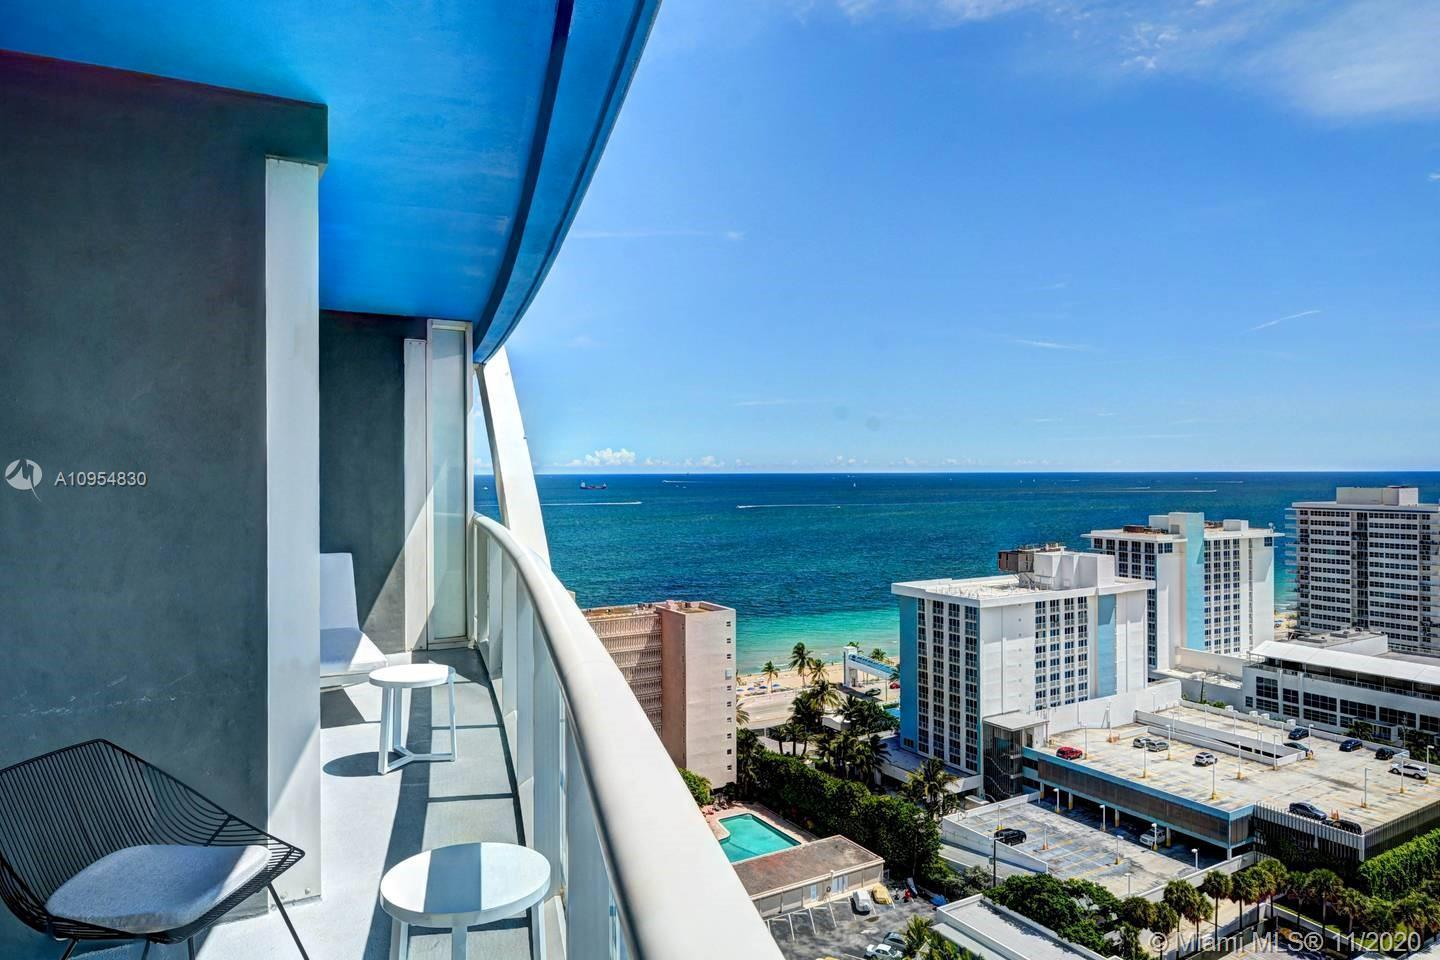 """W"""" Ft Lauderdale 1BR Furnished Unit SE Ocean & intracoastal Views. World Class """"W"""" Resort. This Luxu"""